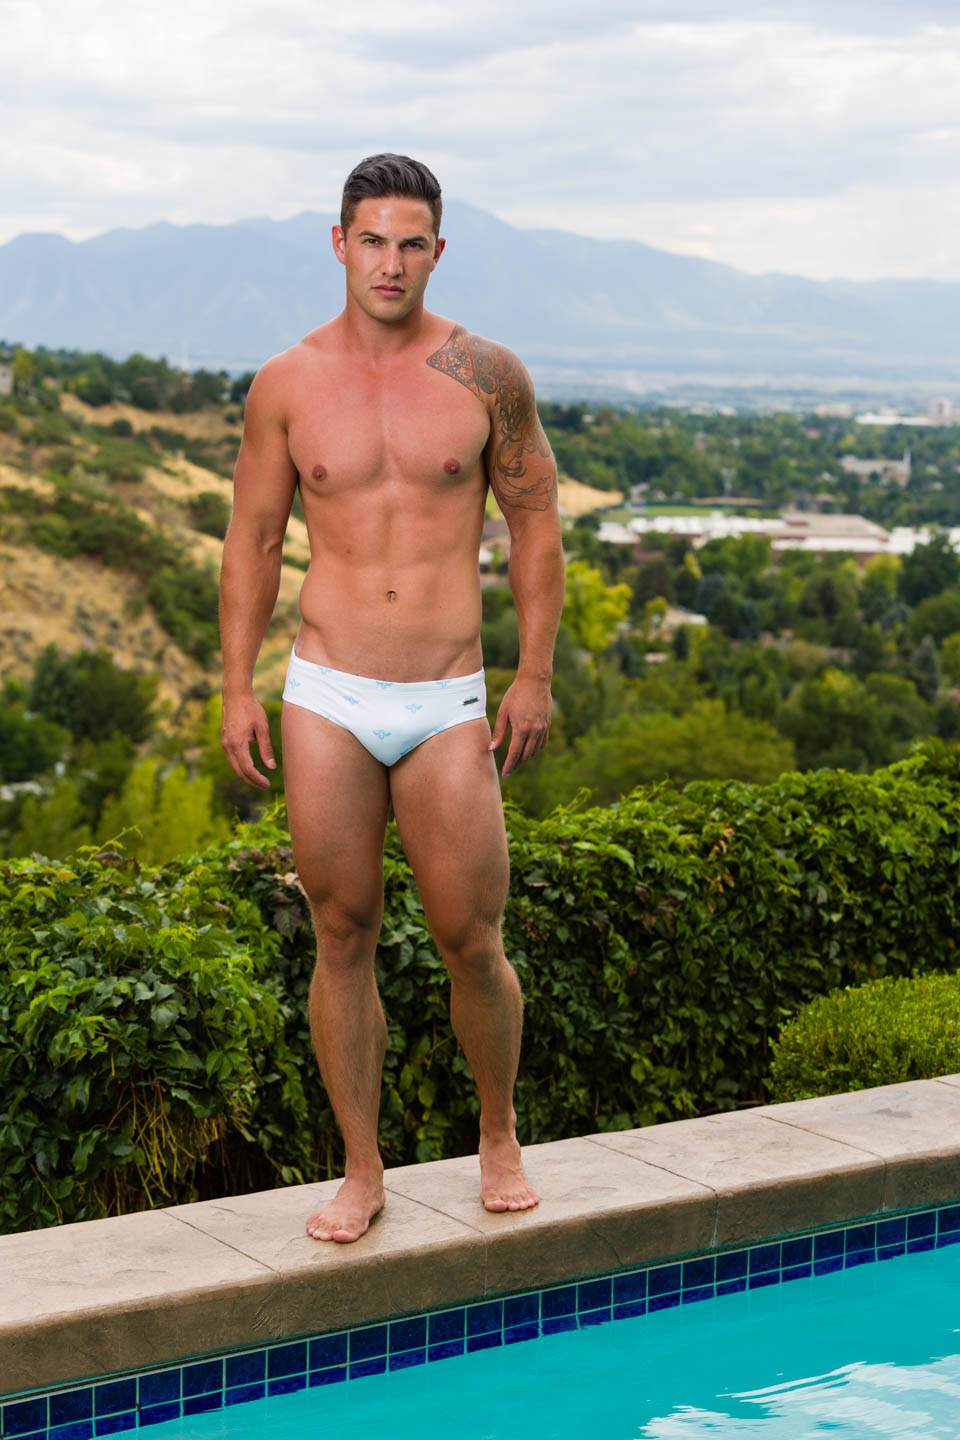 Luke models Aronik Quorum White swimwear